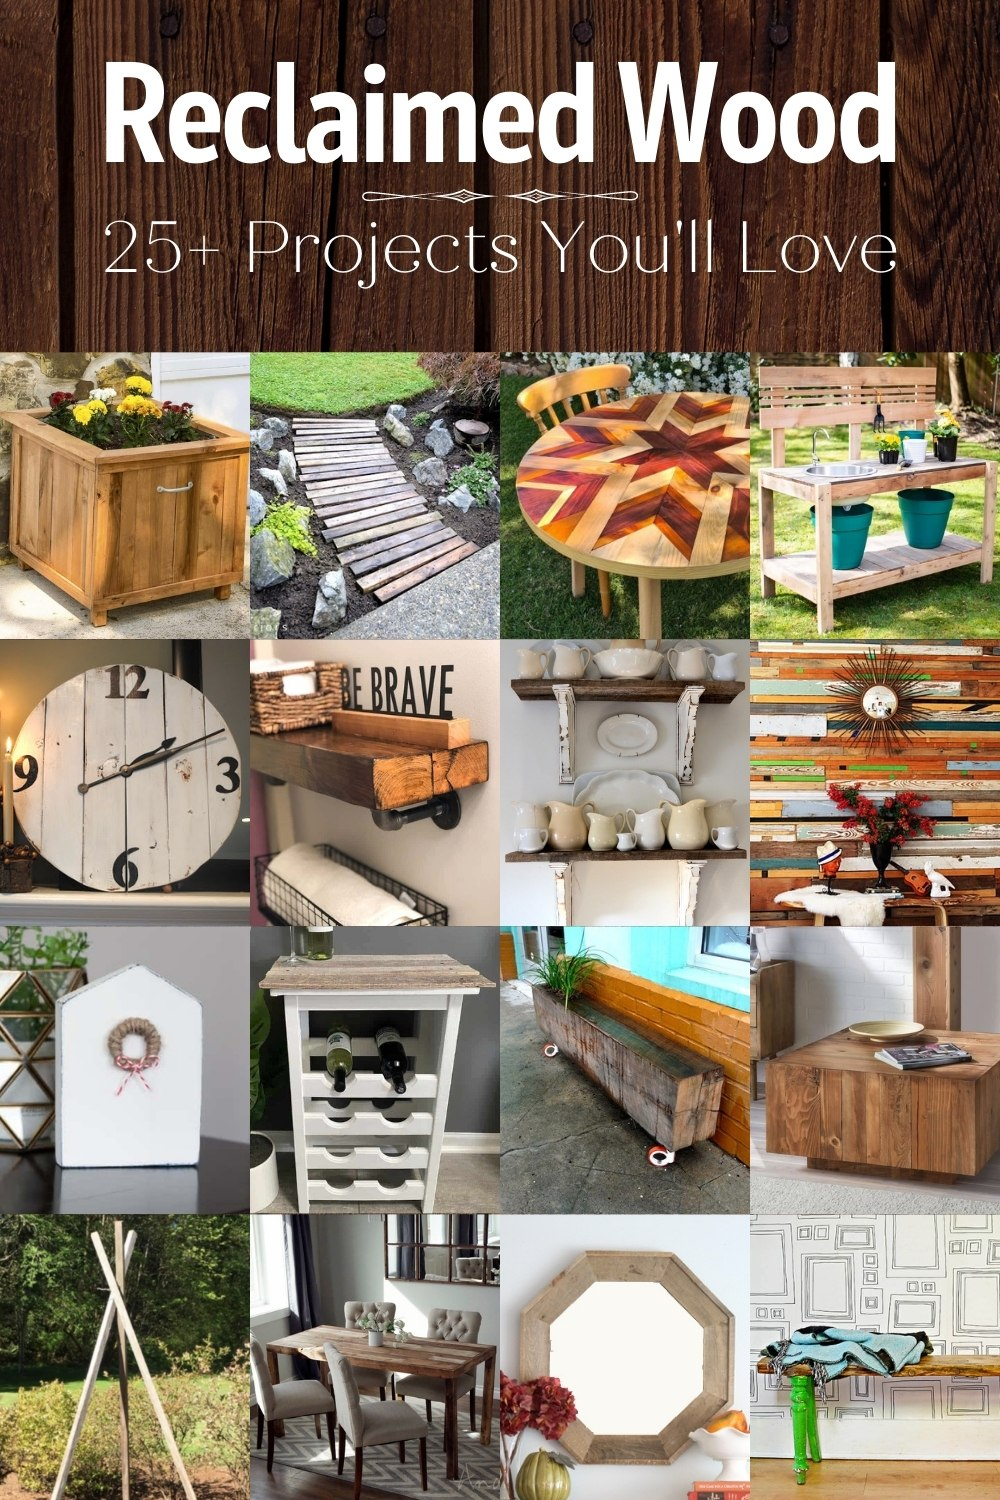 Over 25 Reclaimed Wood Projects You'll Love